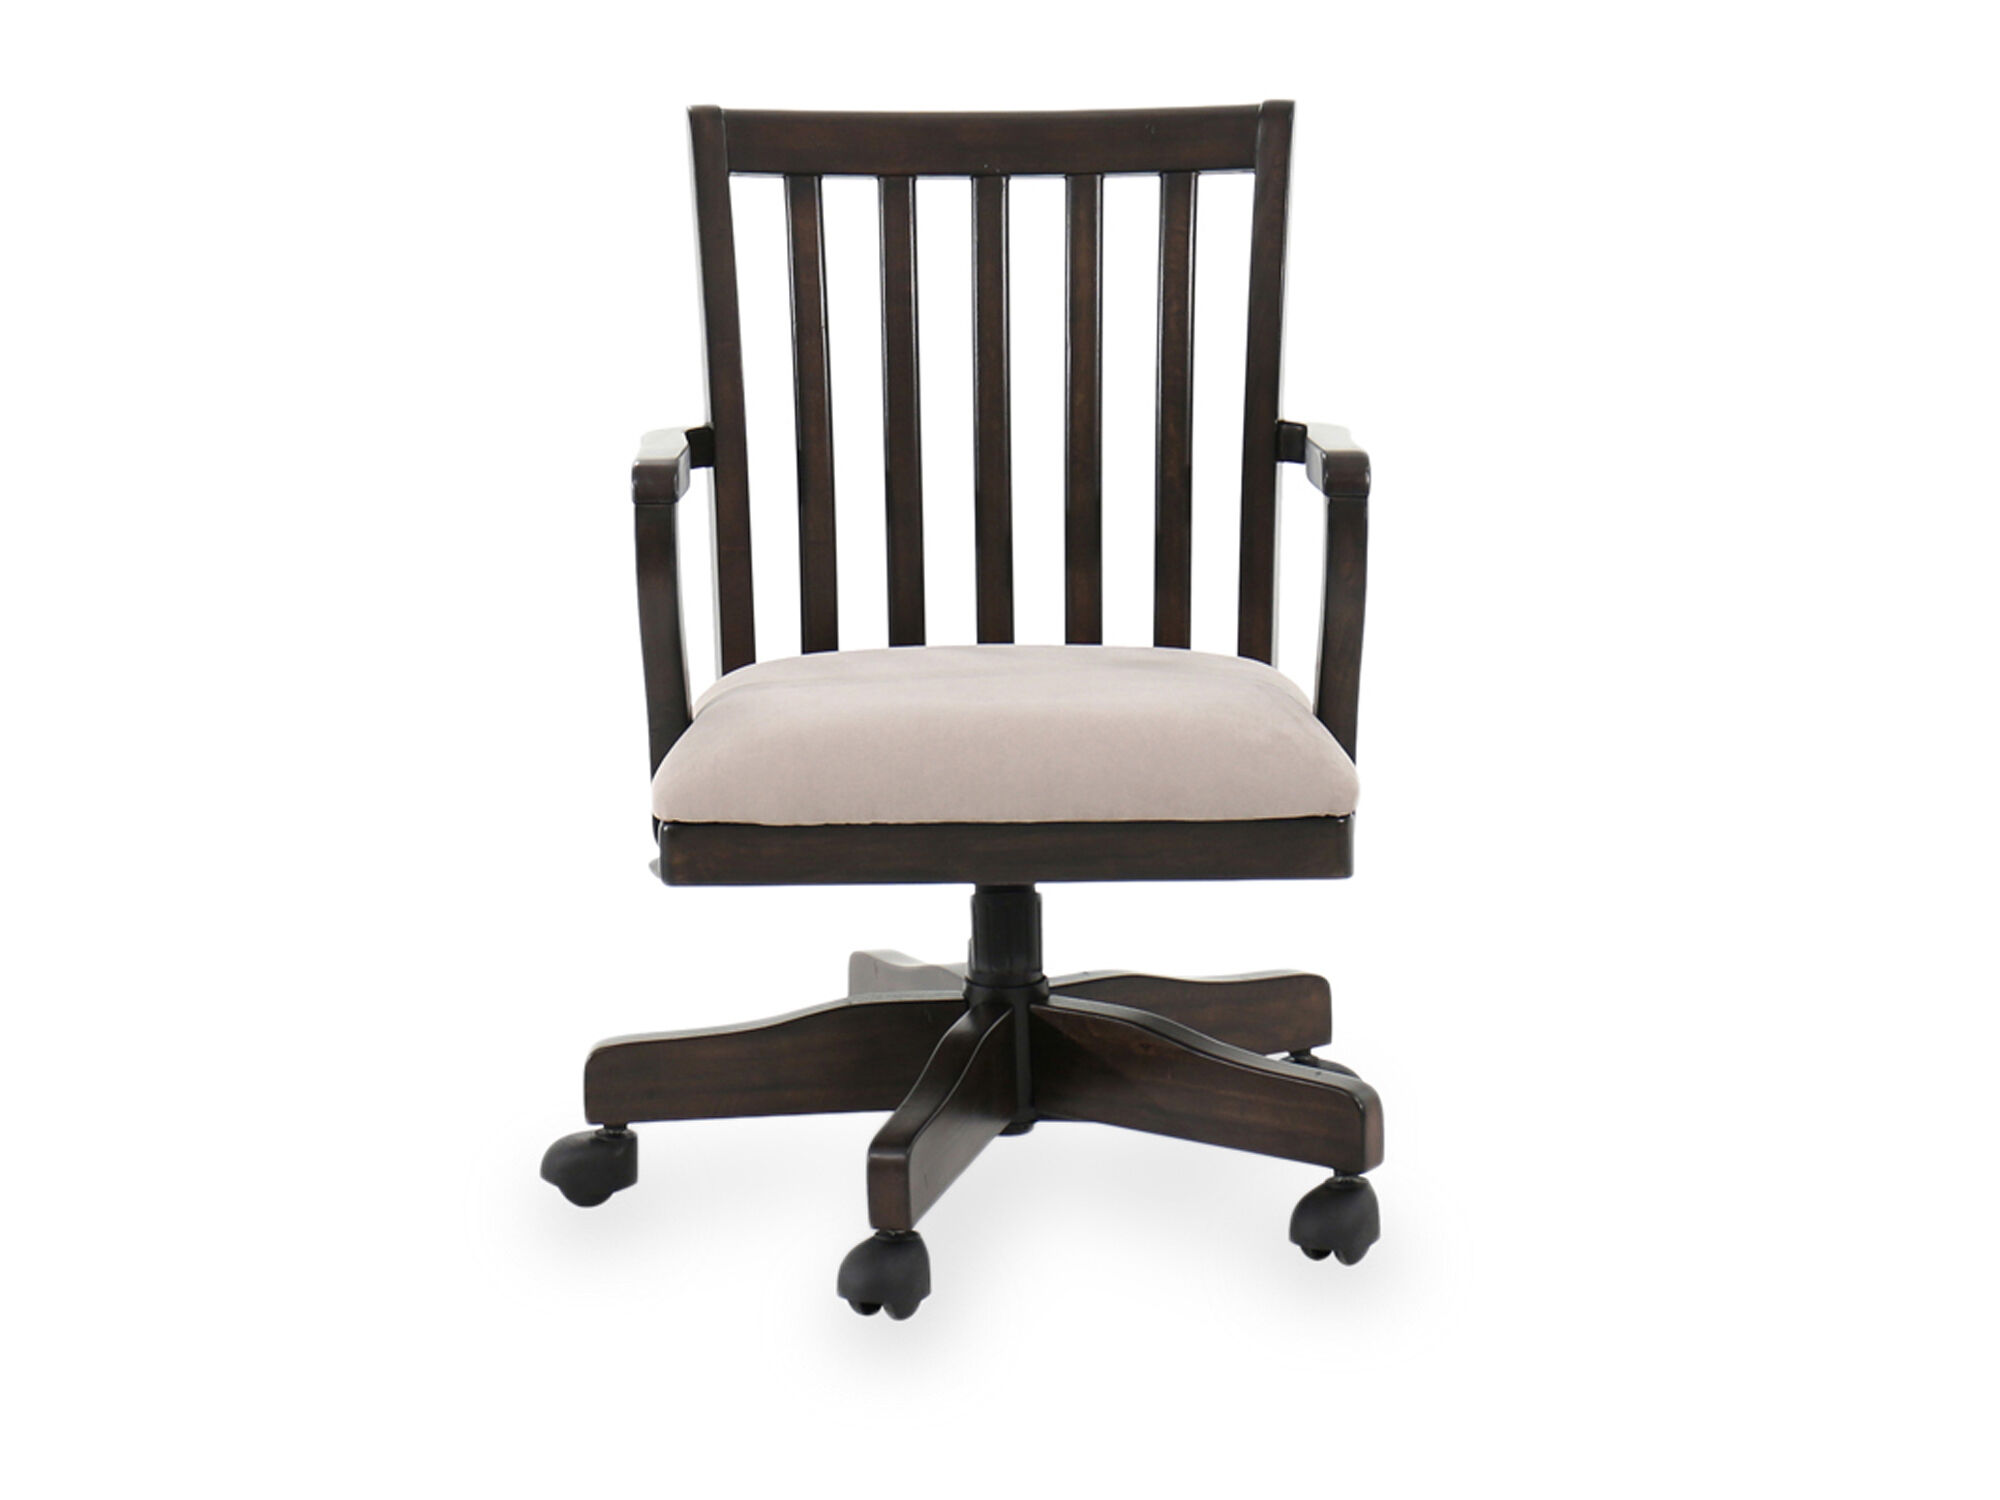 swivel chair for home office desk doesn't stay up ashley townser mathis